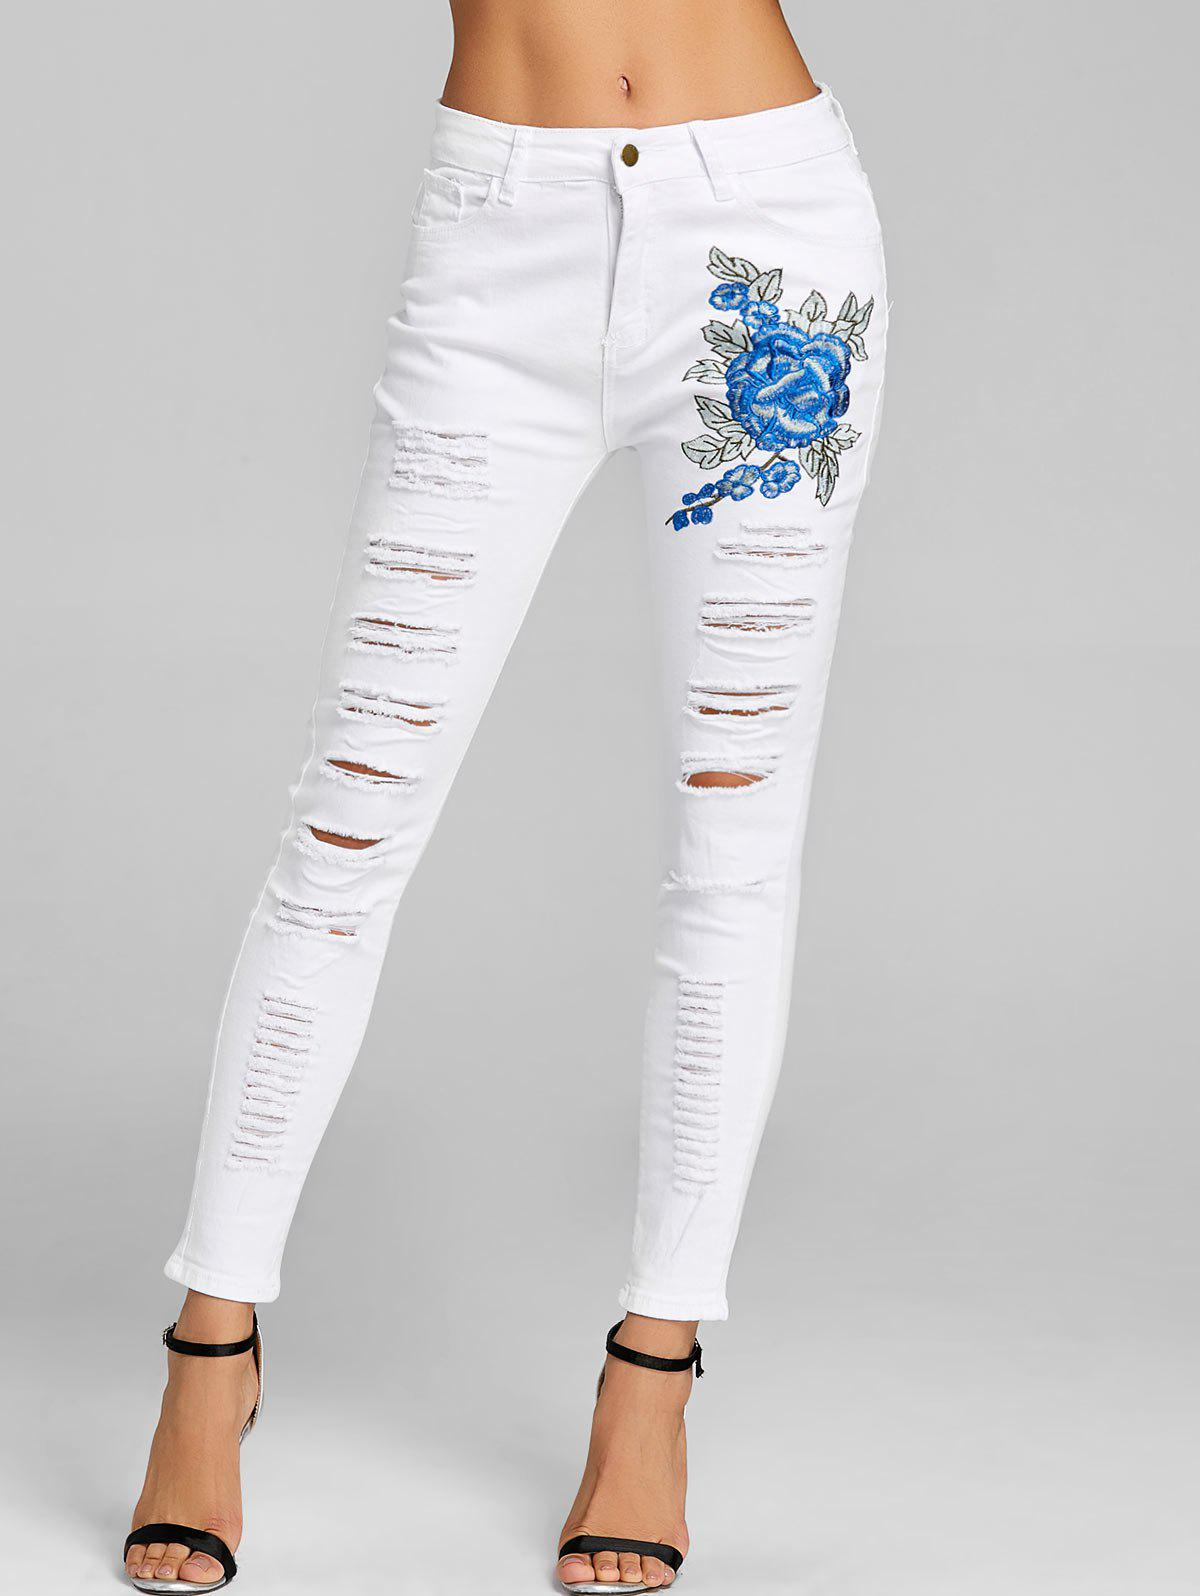 Floral Embroidery Distressed Skinny Jeans - WHITE XL